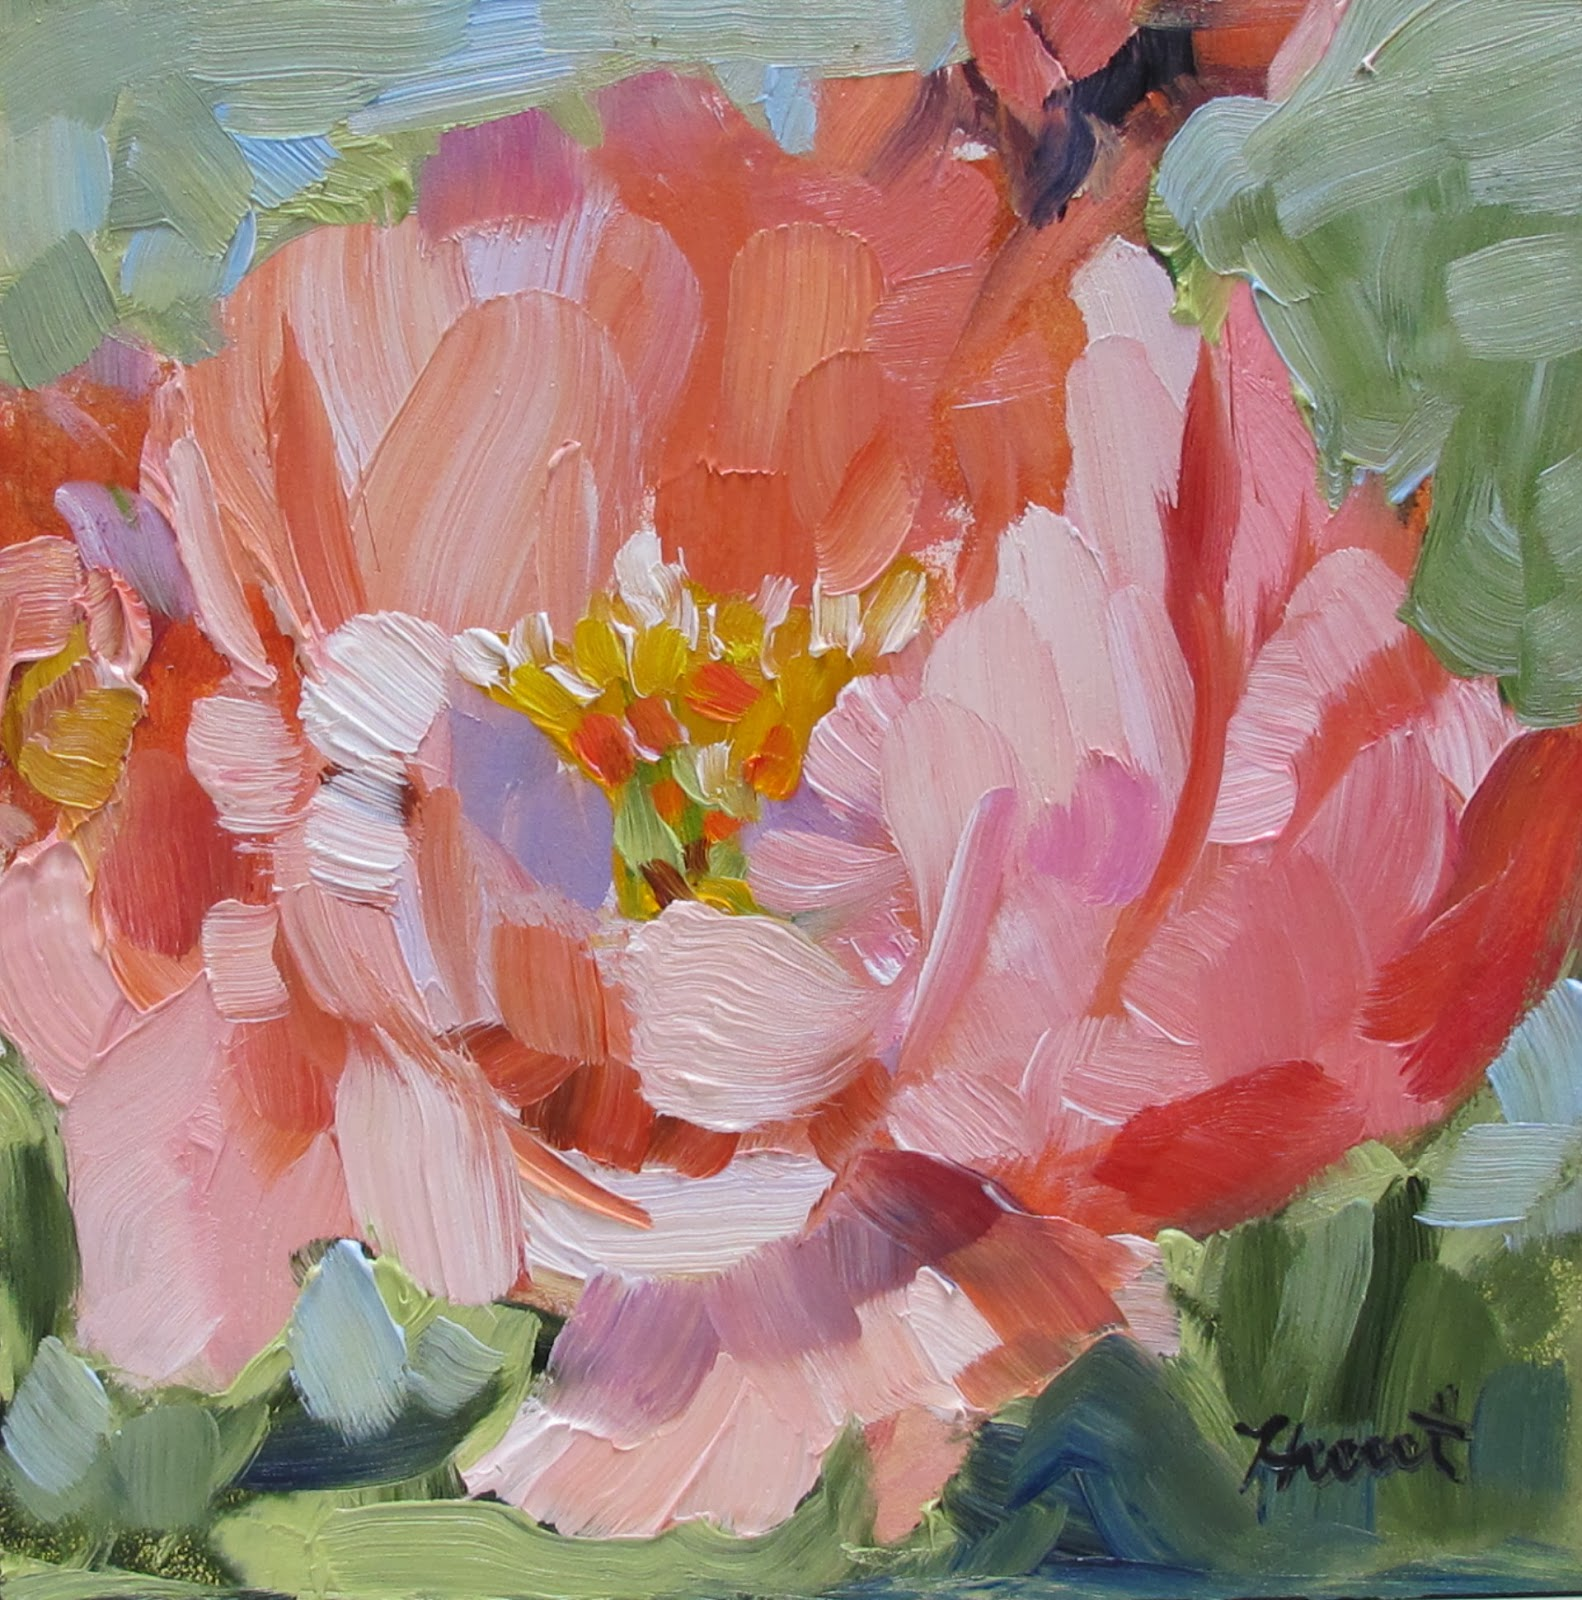 Linda hunt fine art september 2013 for Painting large flowers in acrylic